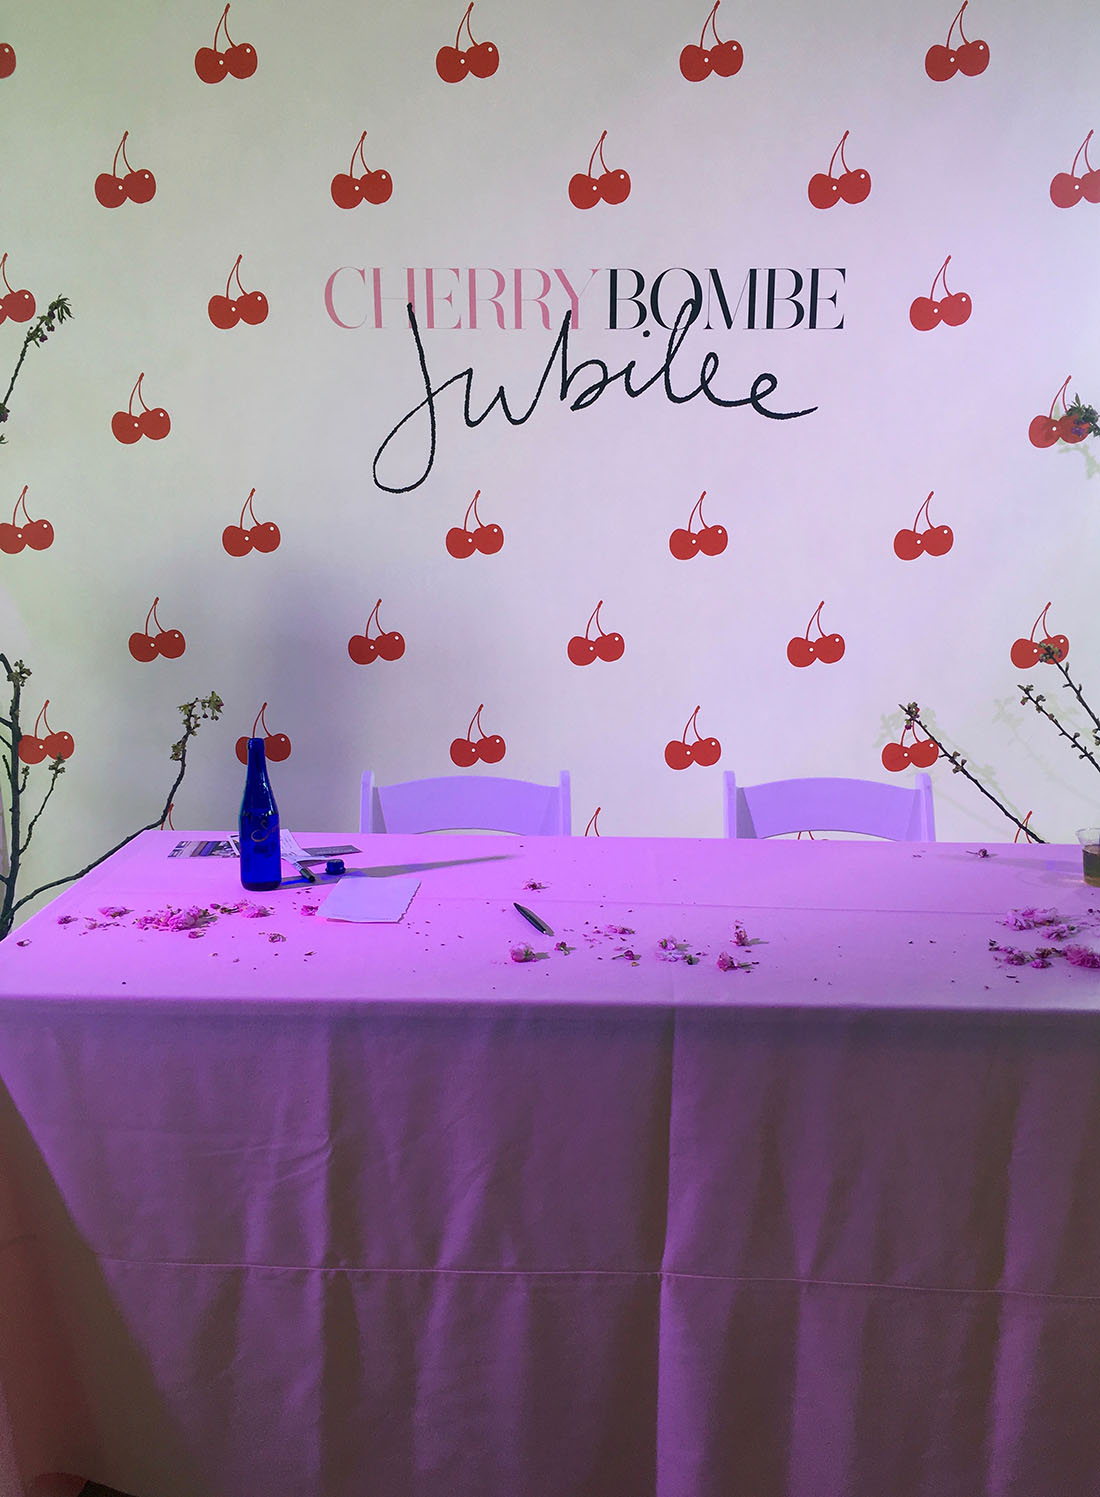 Cherry Bombe Jubilee Cultivates Community For Women Changemakers In